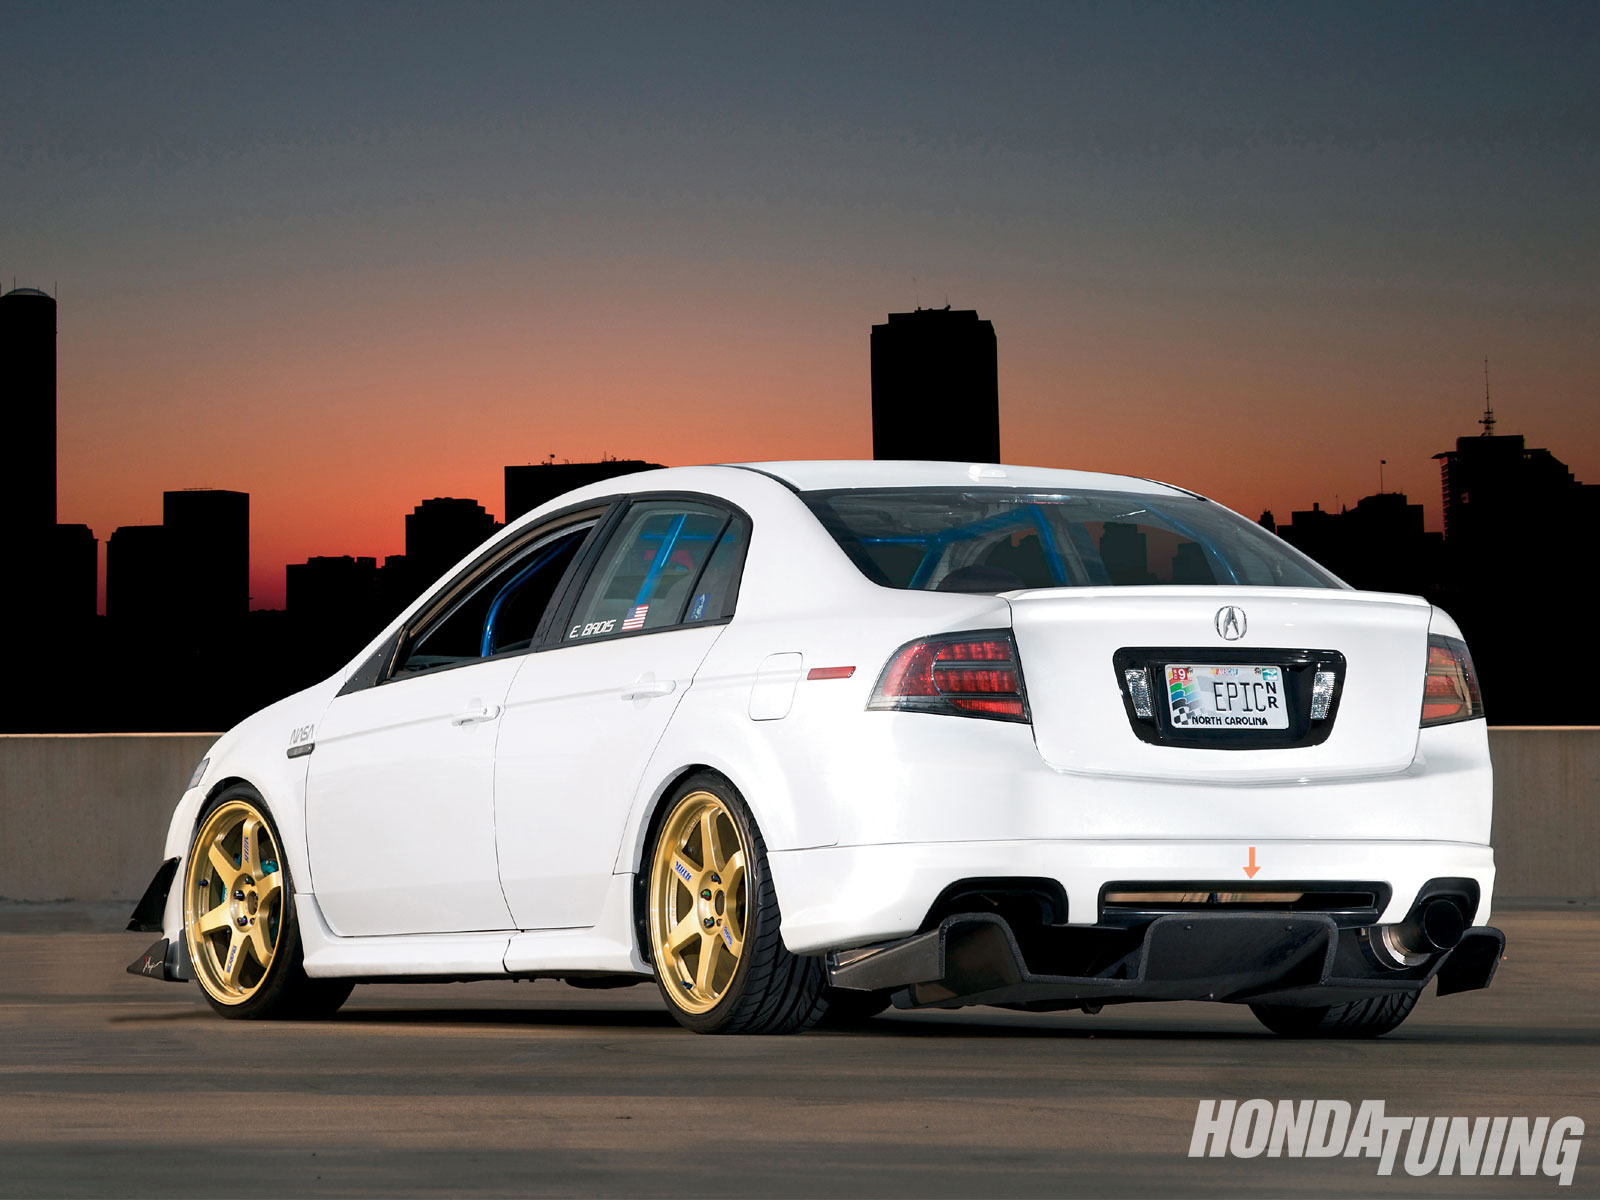 2005 Acura Tl Daring To Be Different Photo Image Gallery